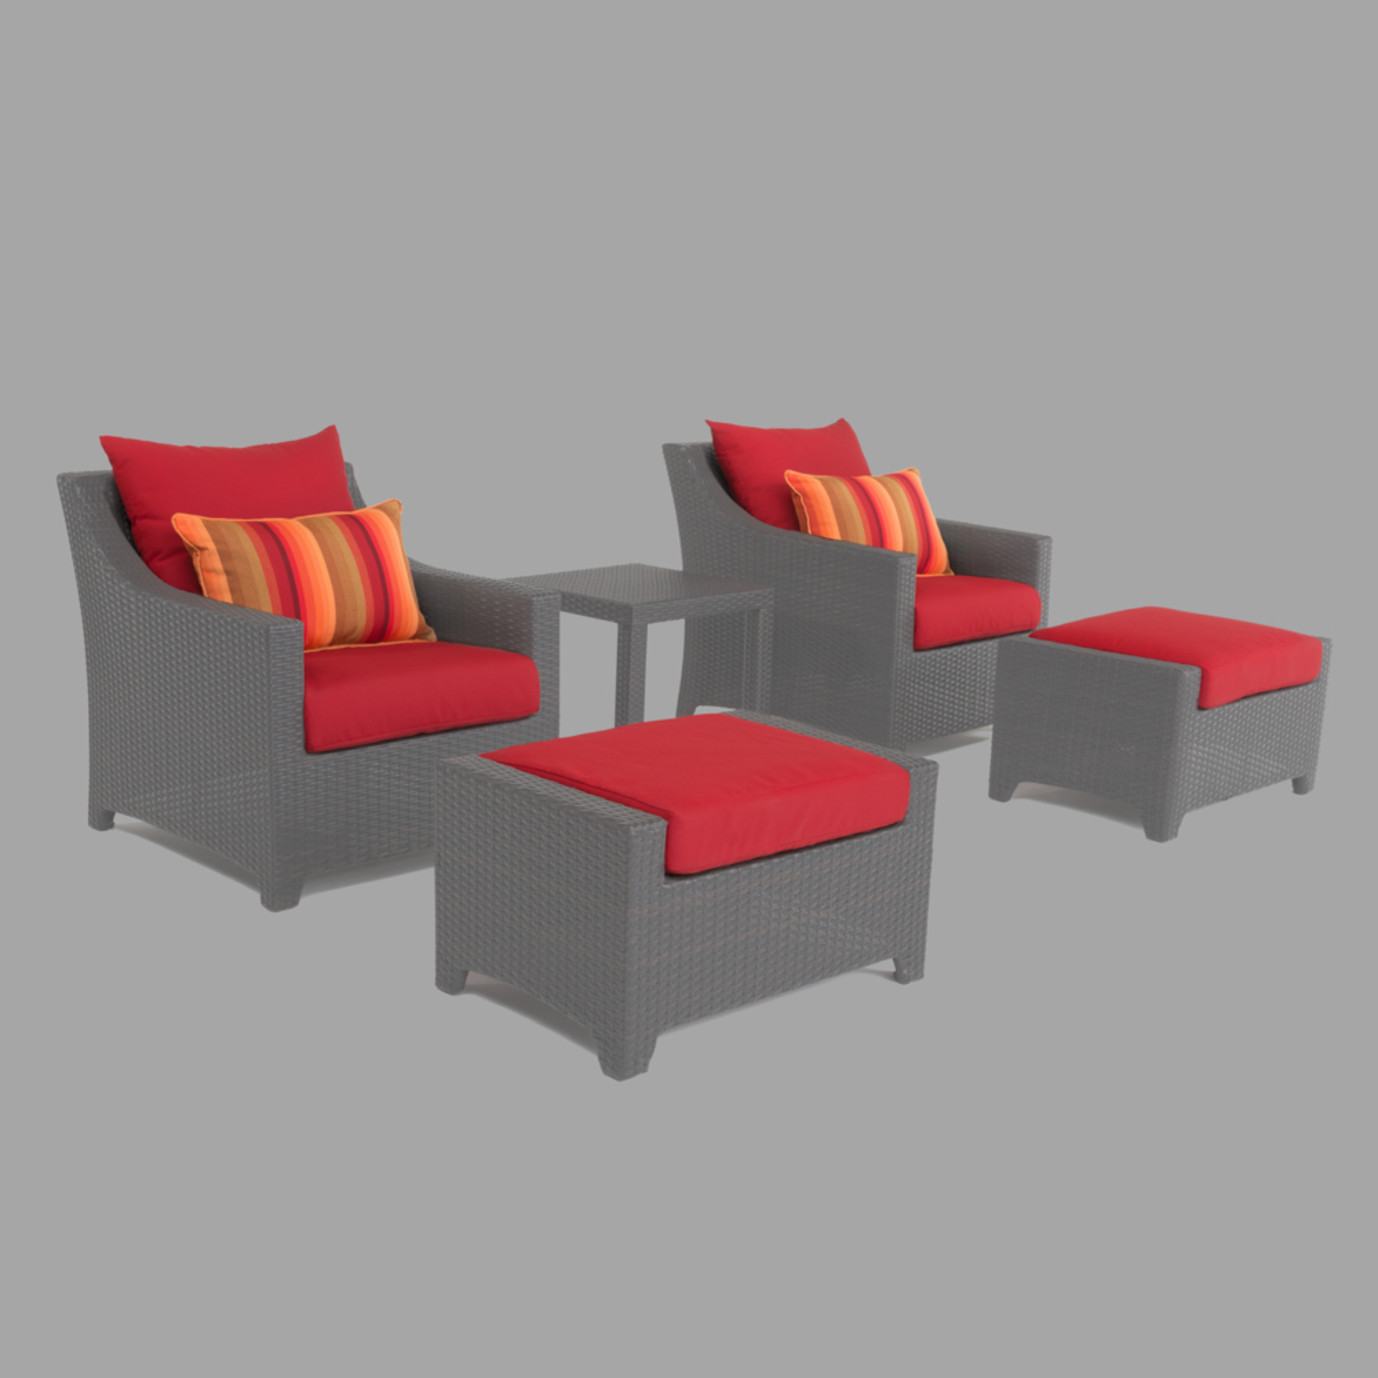 Modular Outdoor 5 Piece Club Cushion Cover Set - Sunset Red